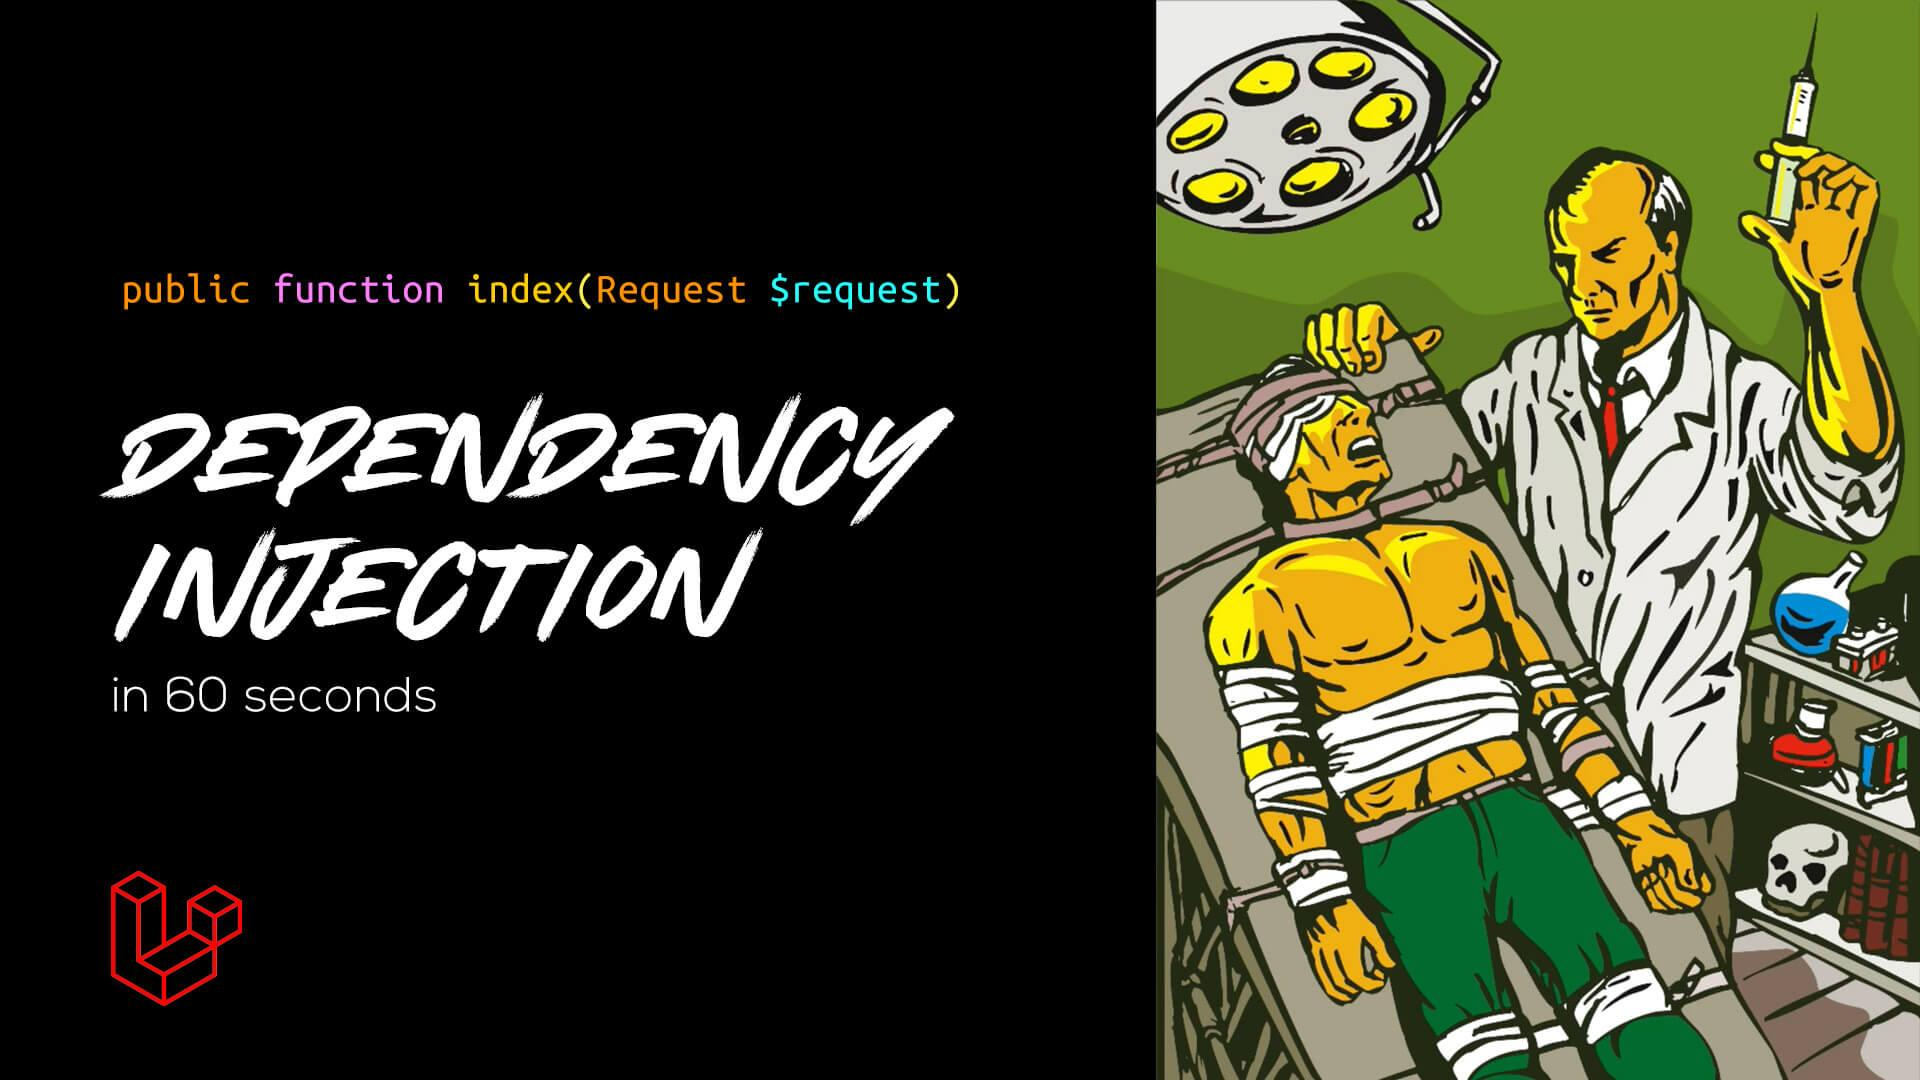 Dependency Injection in 60 seconds